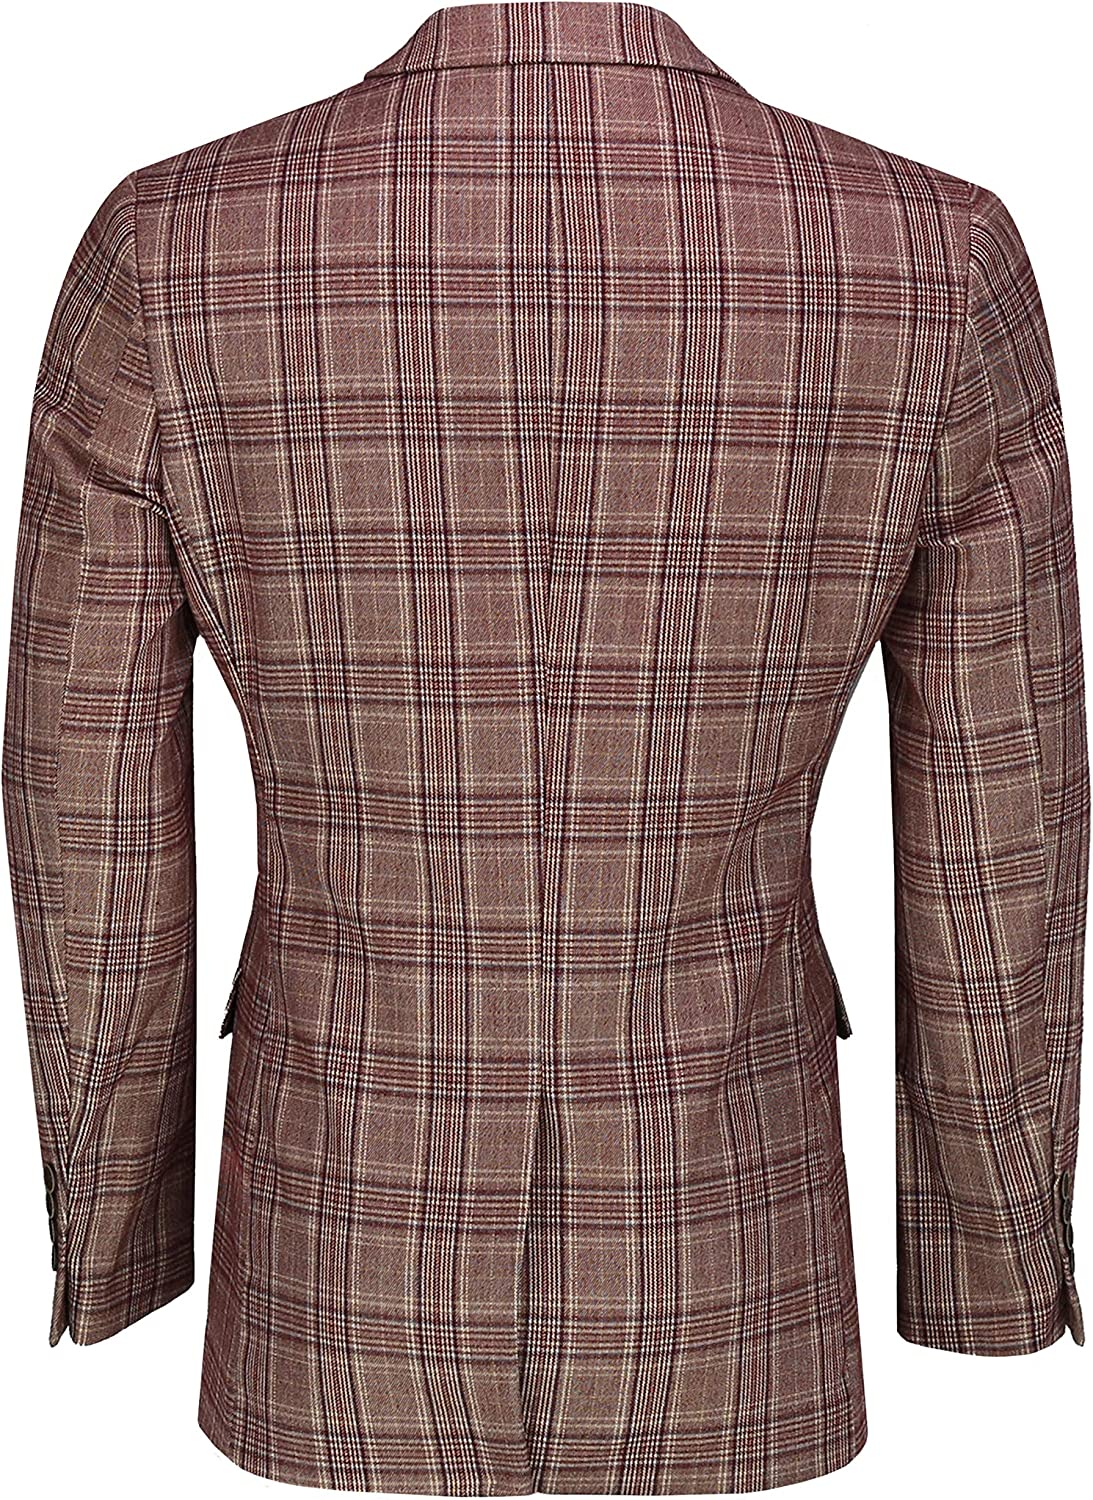 Xposed Mens Single//Double Breasted Blazer Tweed Check Retro Tailored Fit Suit Jacket